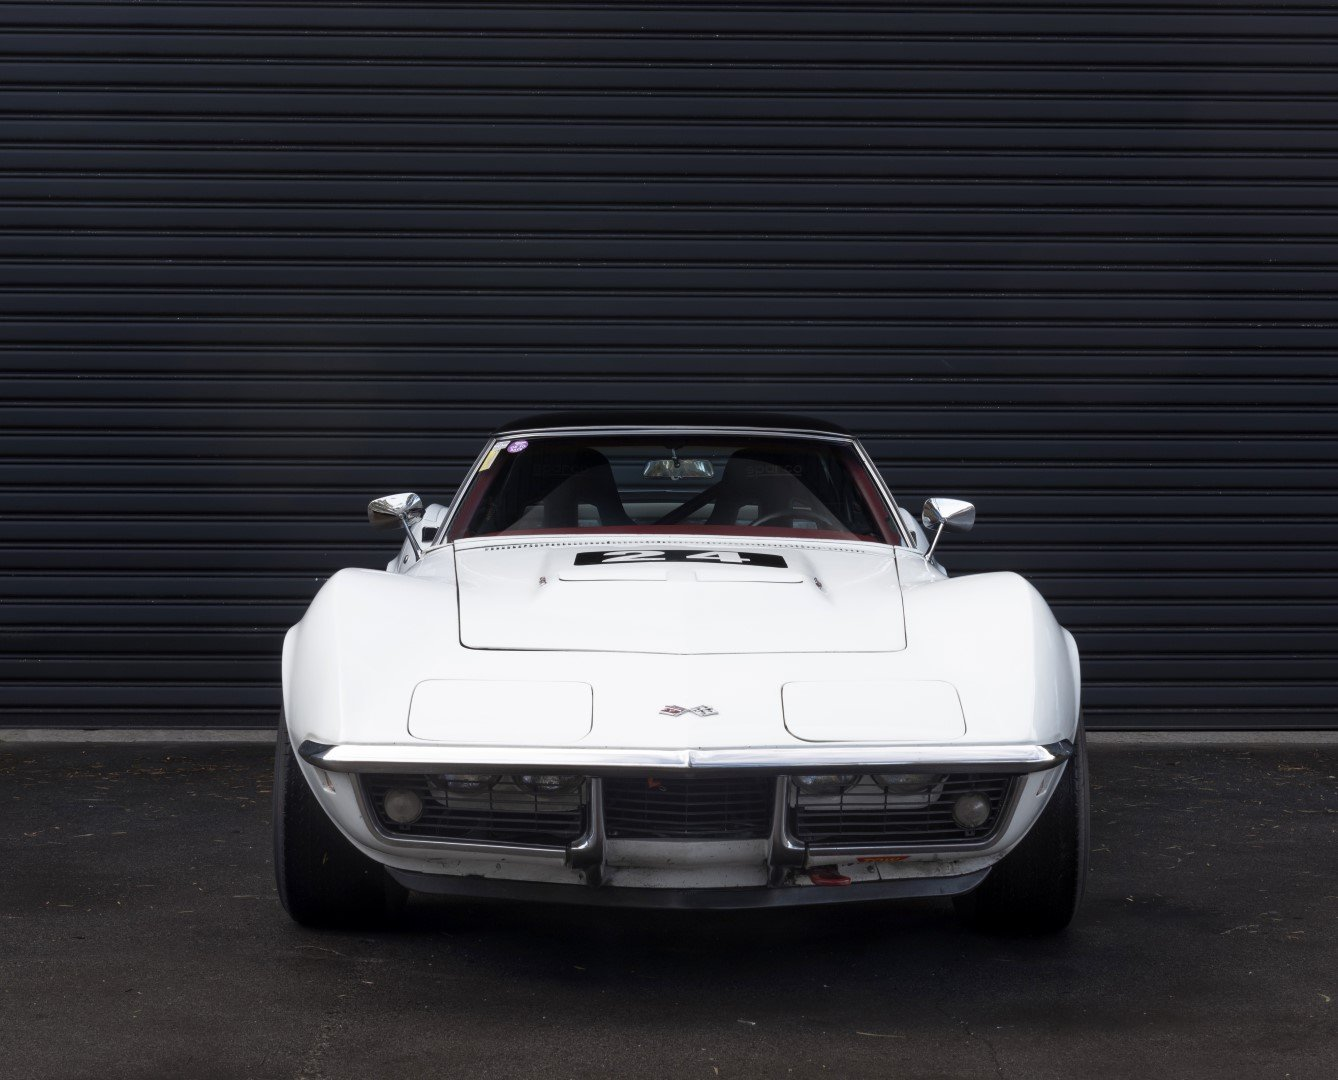 1969 CHEVROLET CORVETTE 427 'BIG BLOCK' ROADSTER W/ HARDTOP For Sale by Auction (picture 4 of 6)